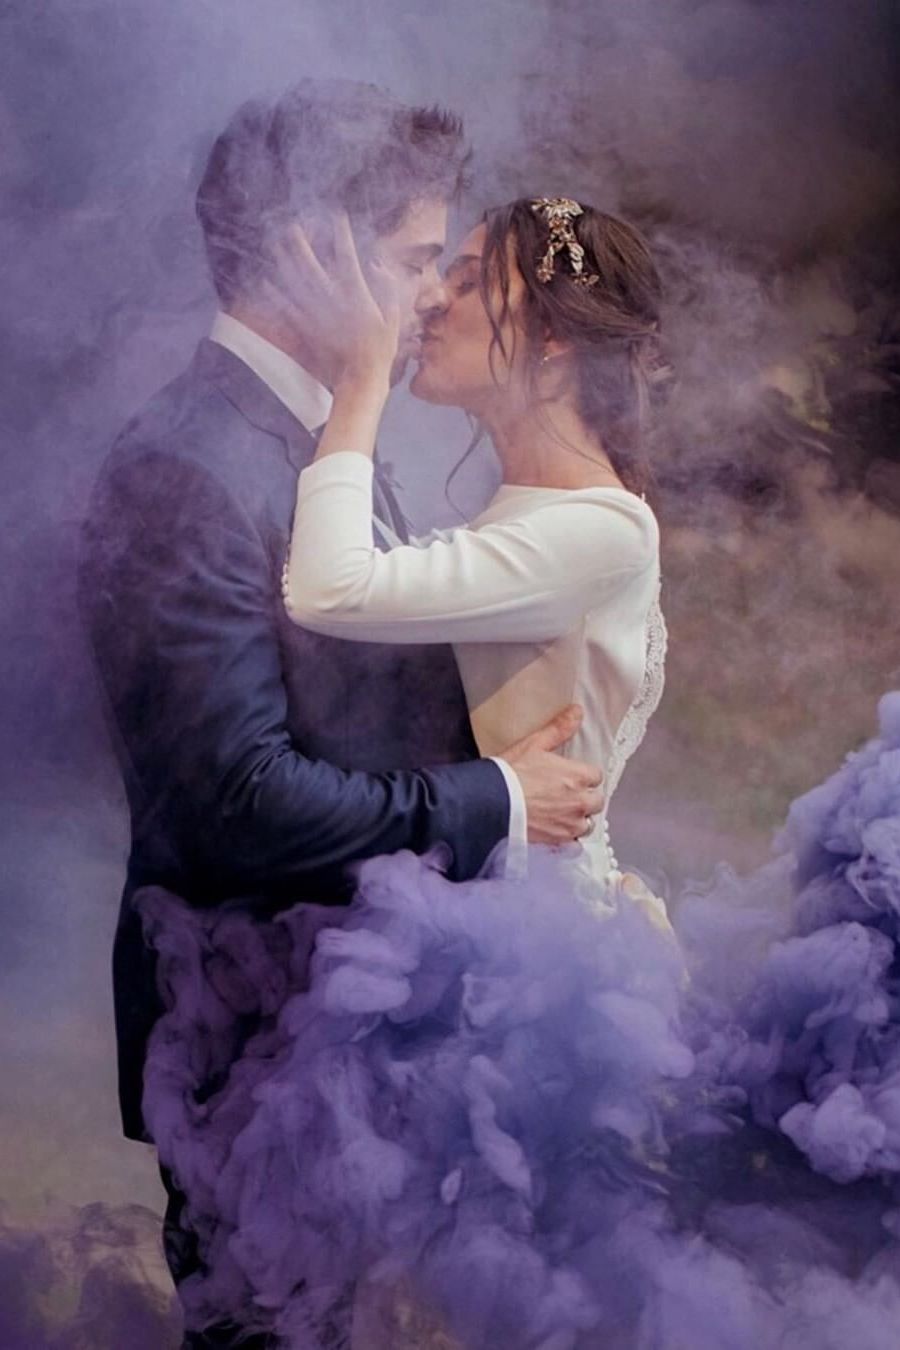 stunning wedding photo ideas with purple smoke bombs